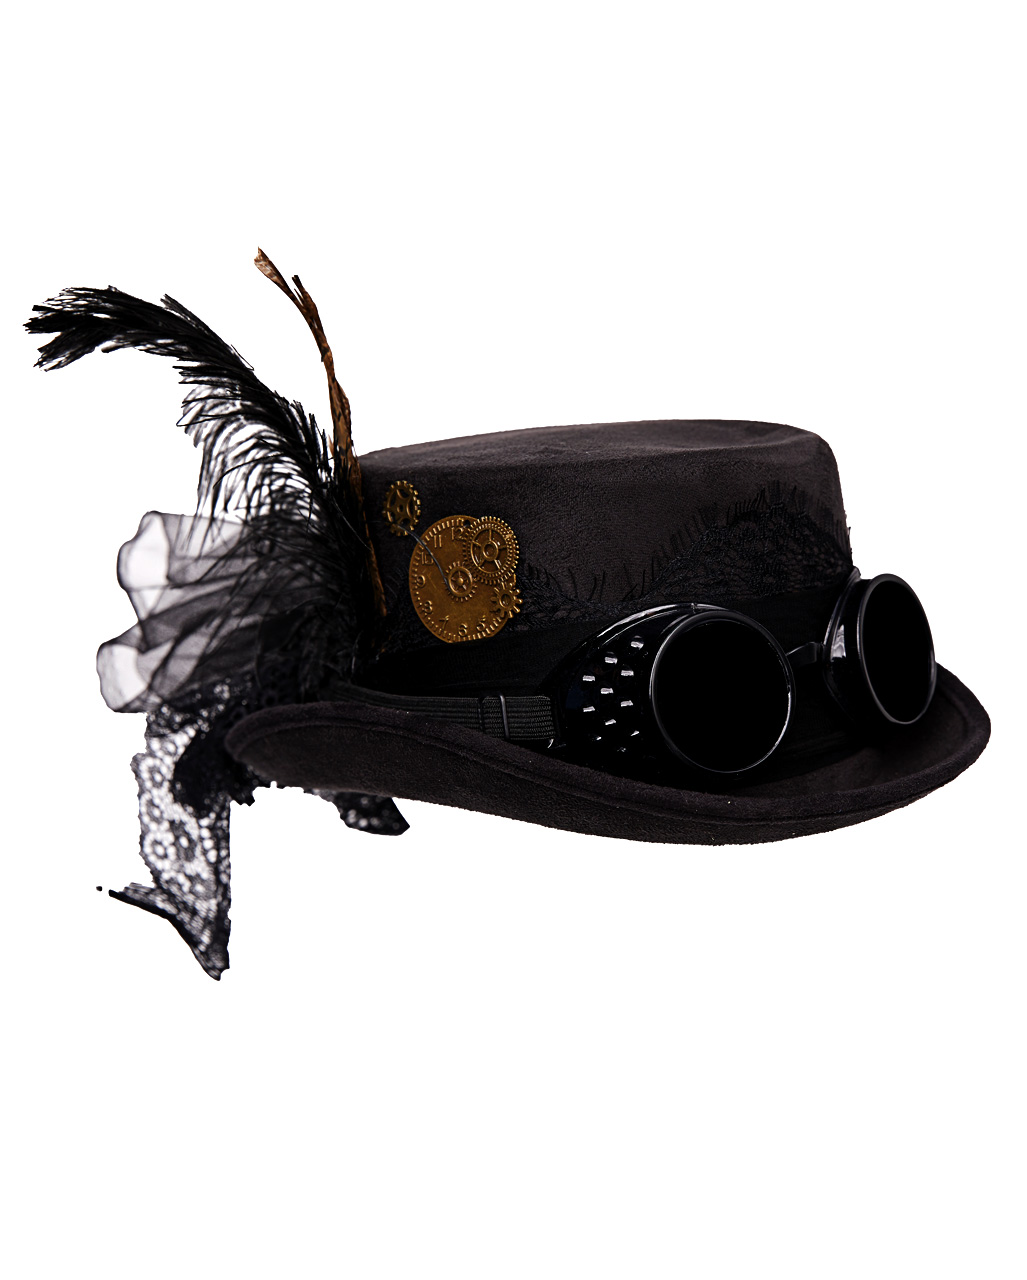 Steampunk Hat With Goggles Black as costume accessory  86436ad8ff3b